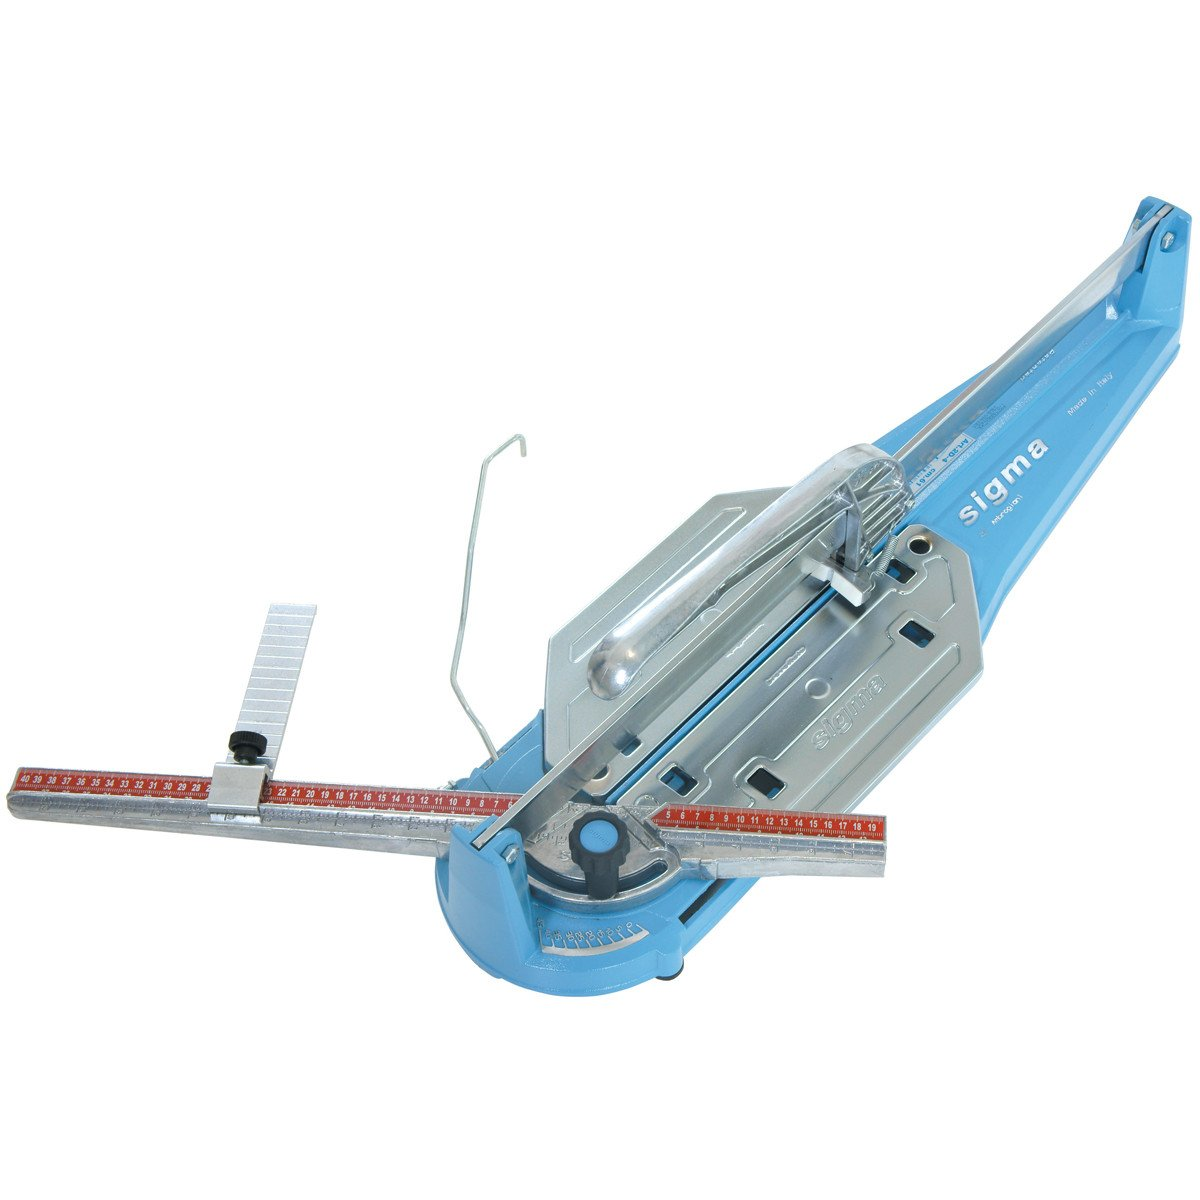 Sigma 2D4 24 in. Sigma Push Tile Cutter.